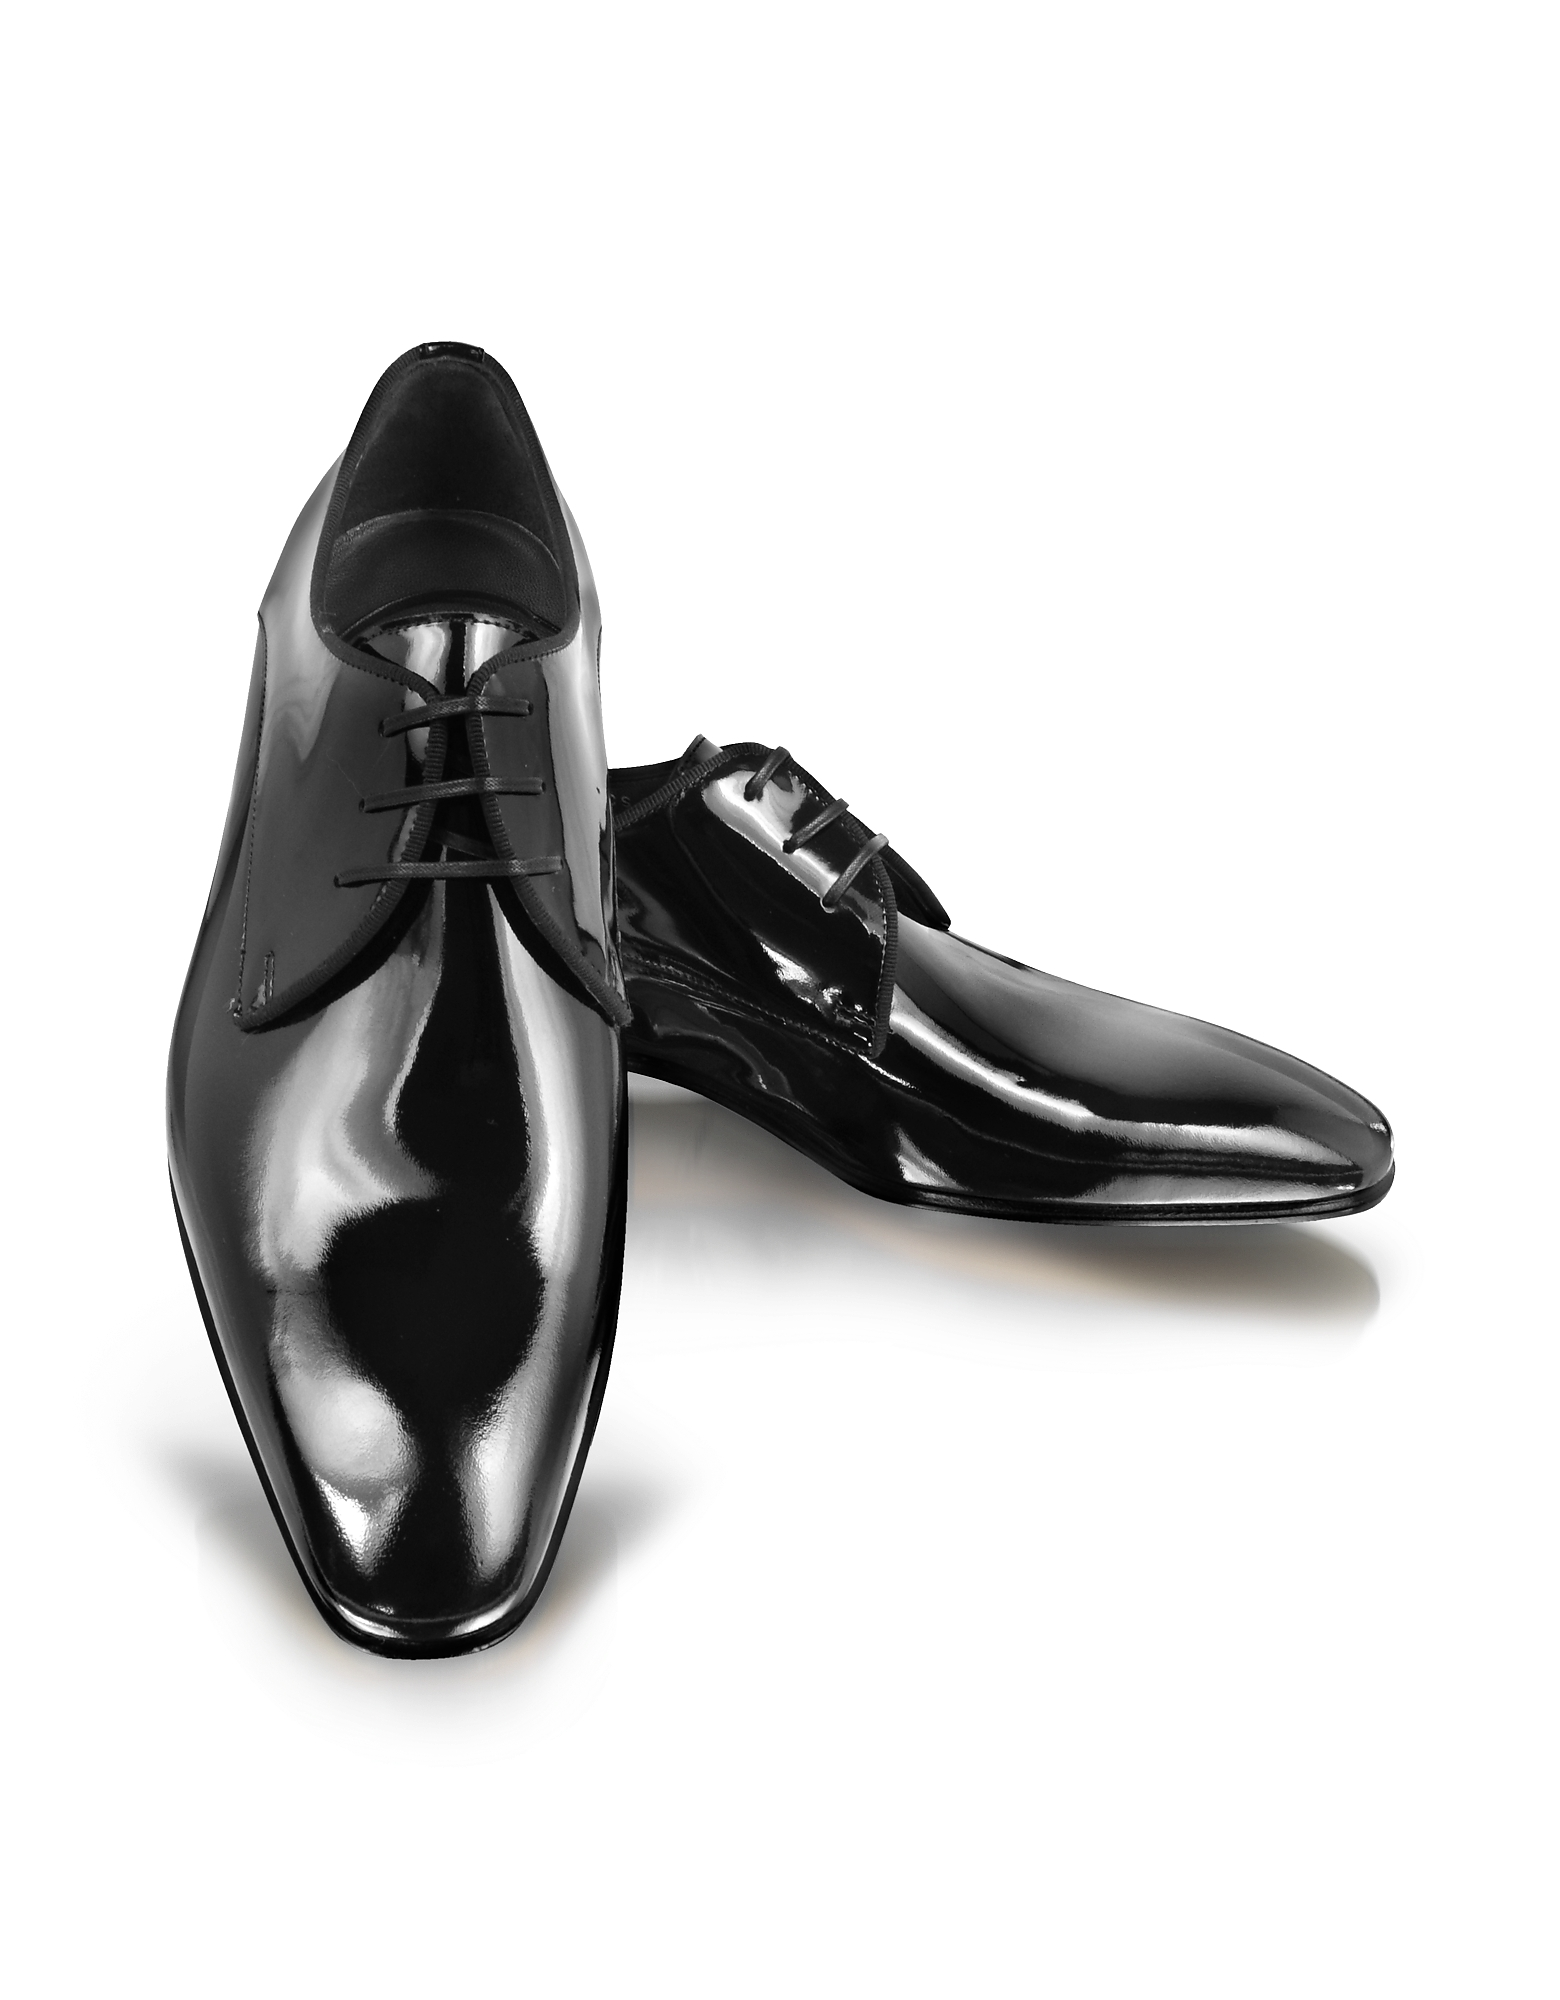 Moreschi Shoes, Salzburg - Patent Leather Derby